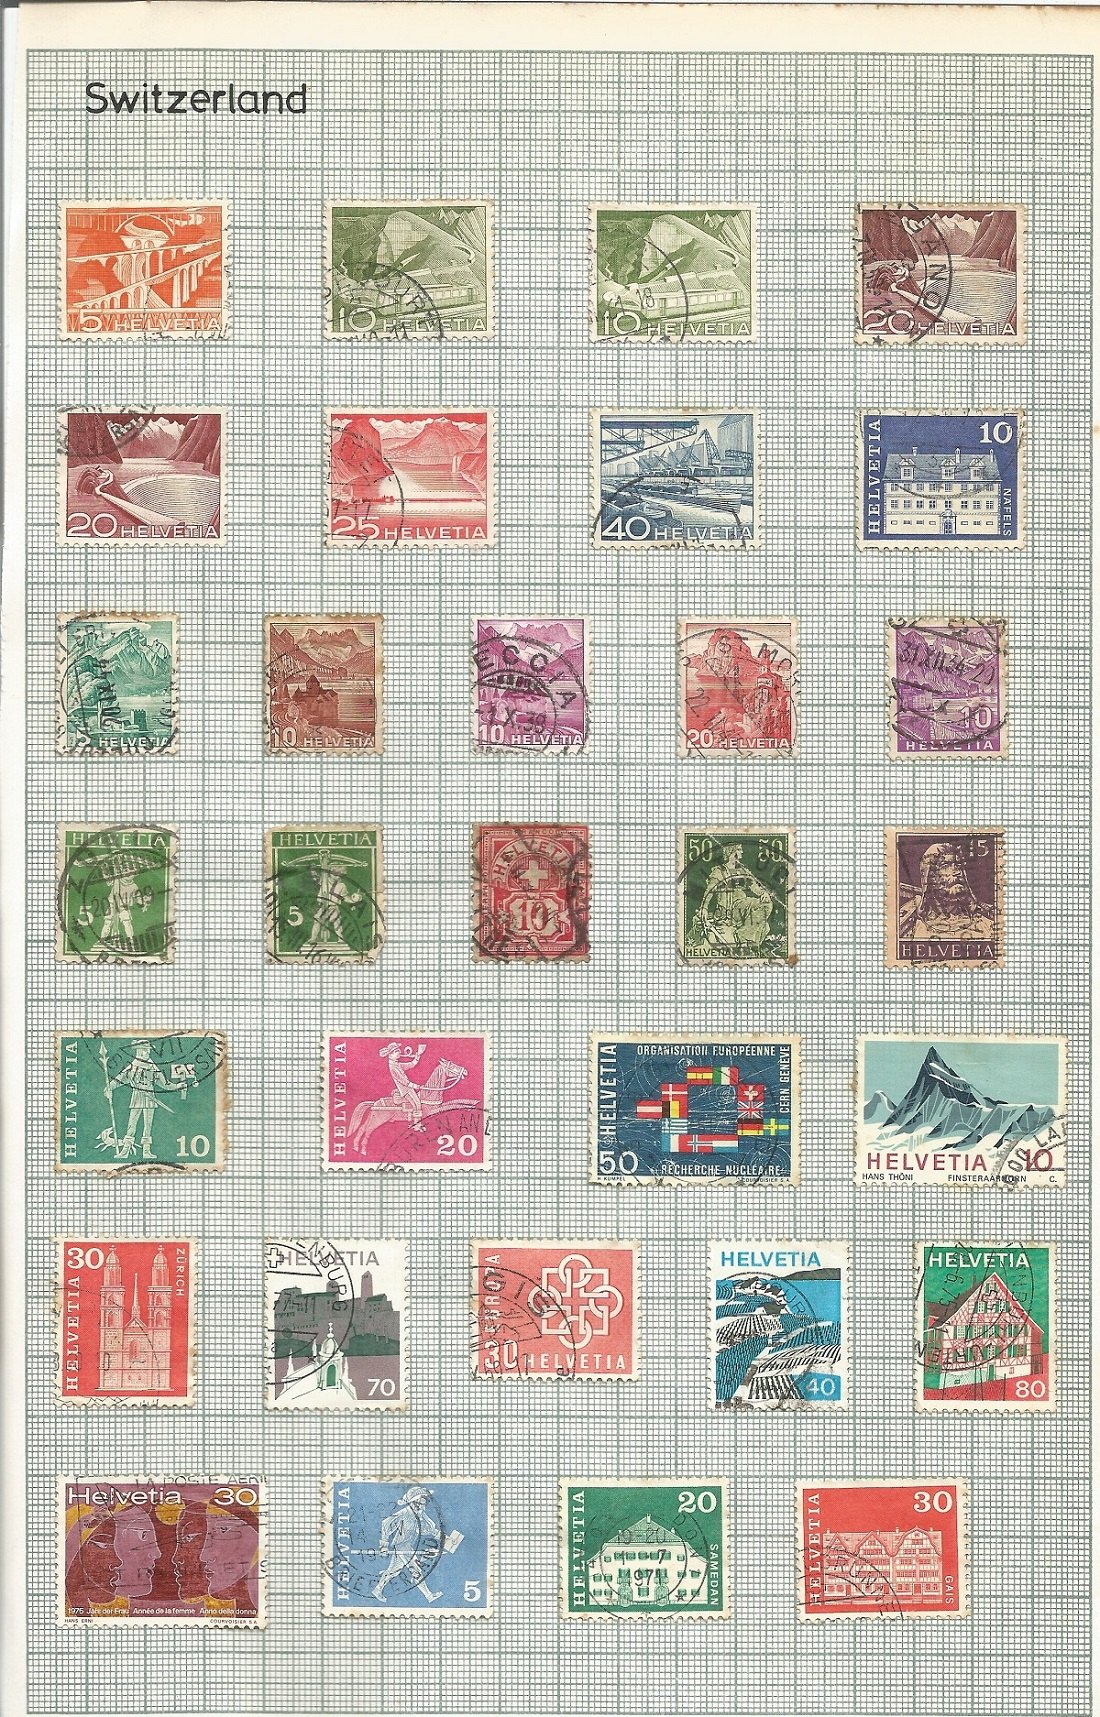 Italy, Switzerland, Greece and Crete stamps on 6 loose pages. Good condition. We combine postage - Image 3 of 3